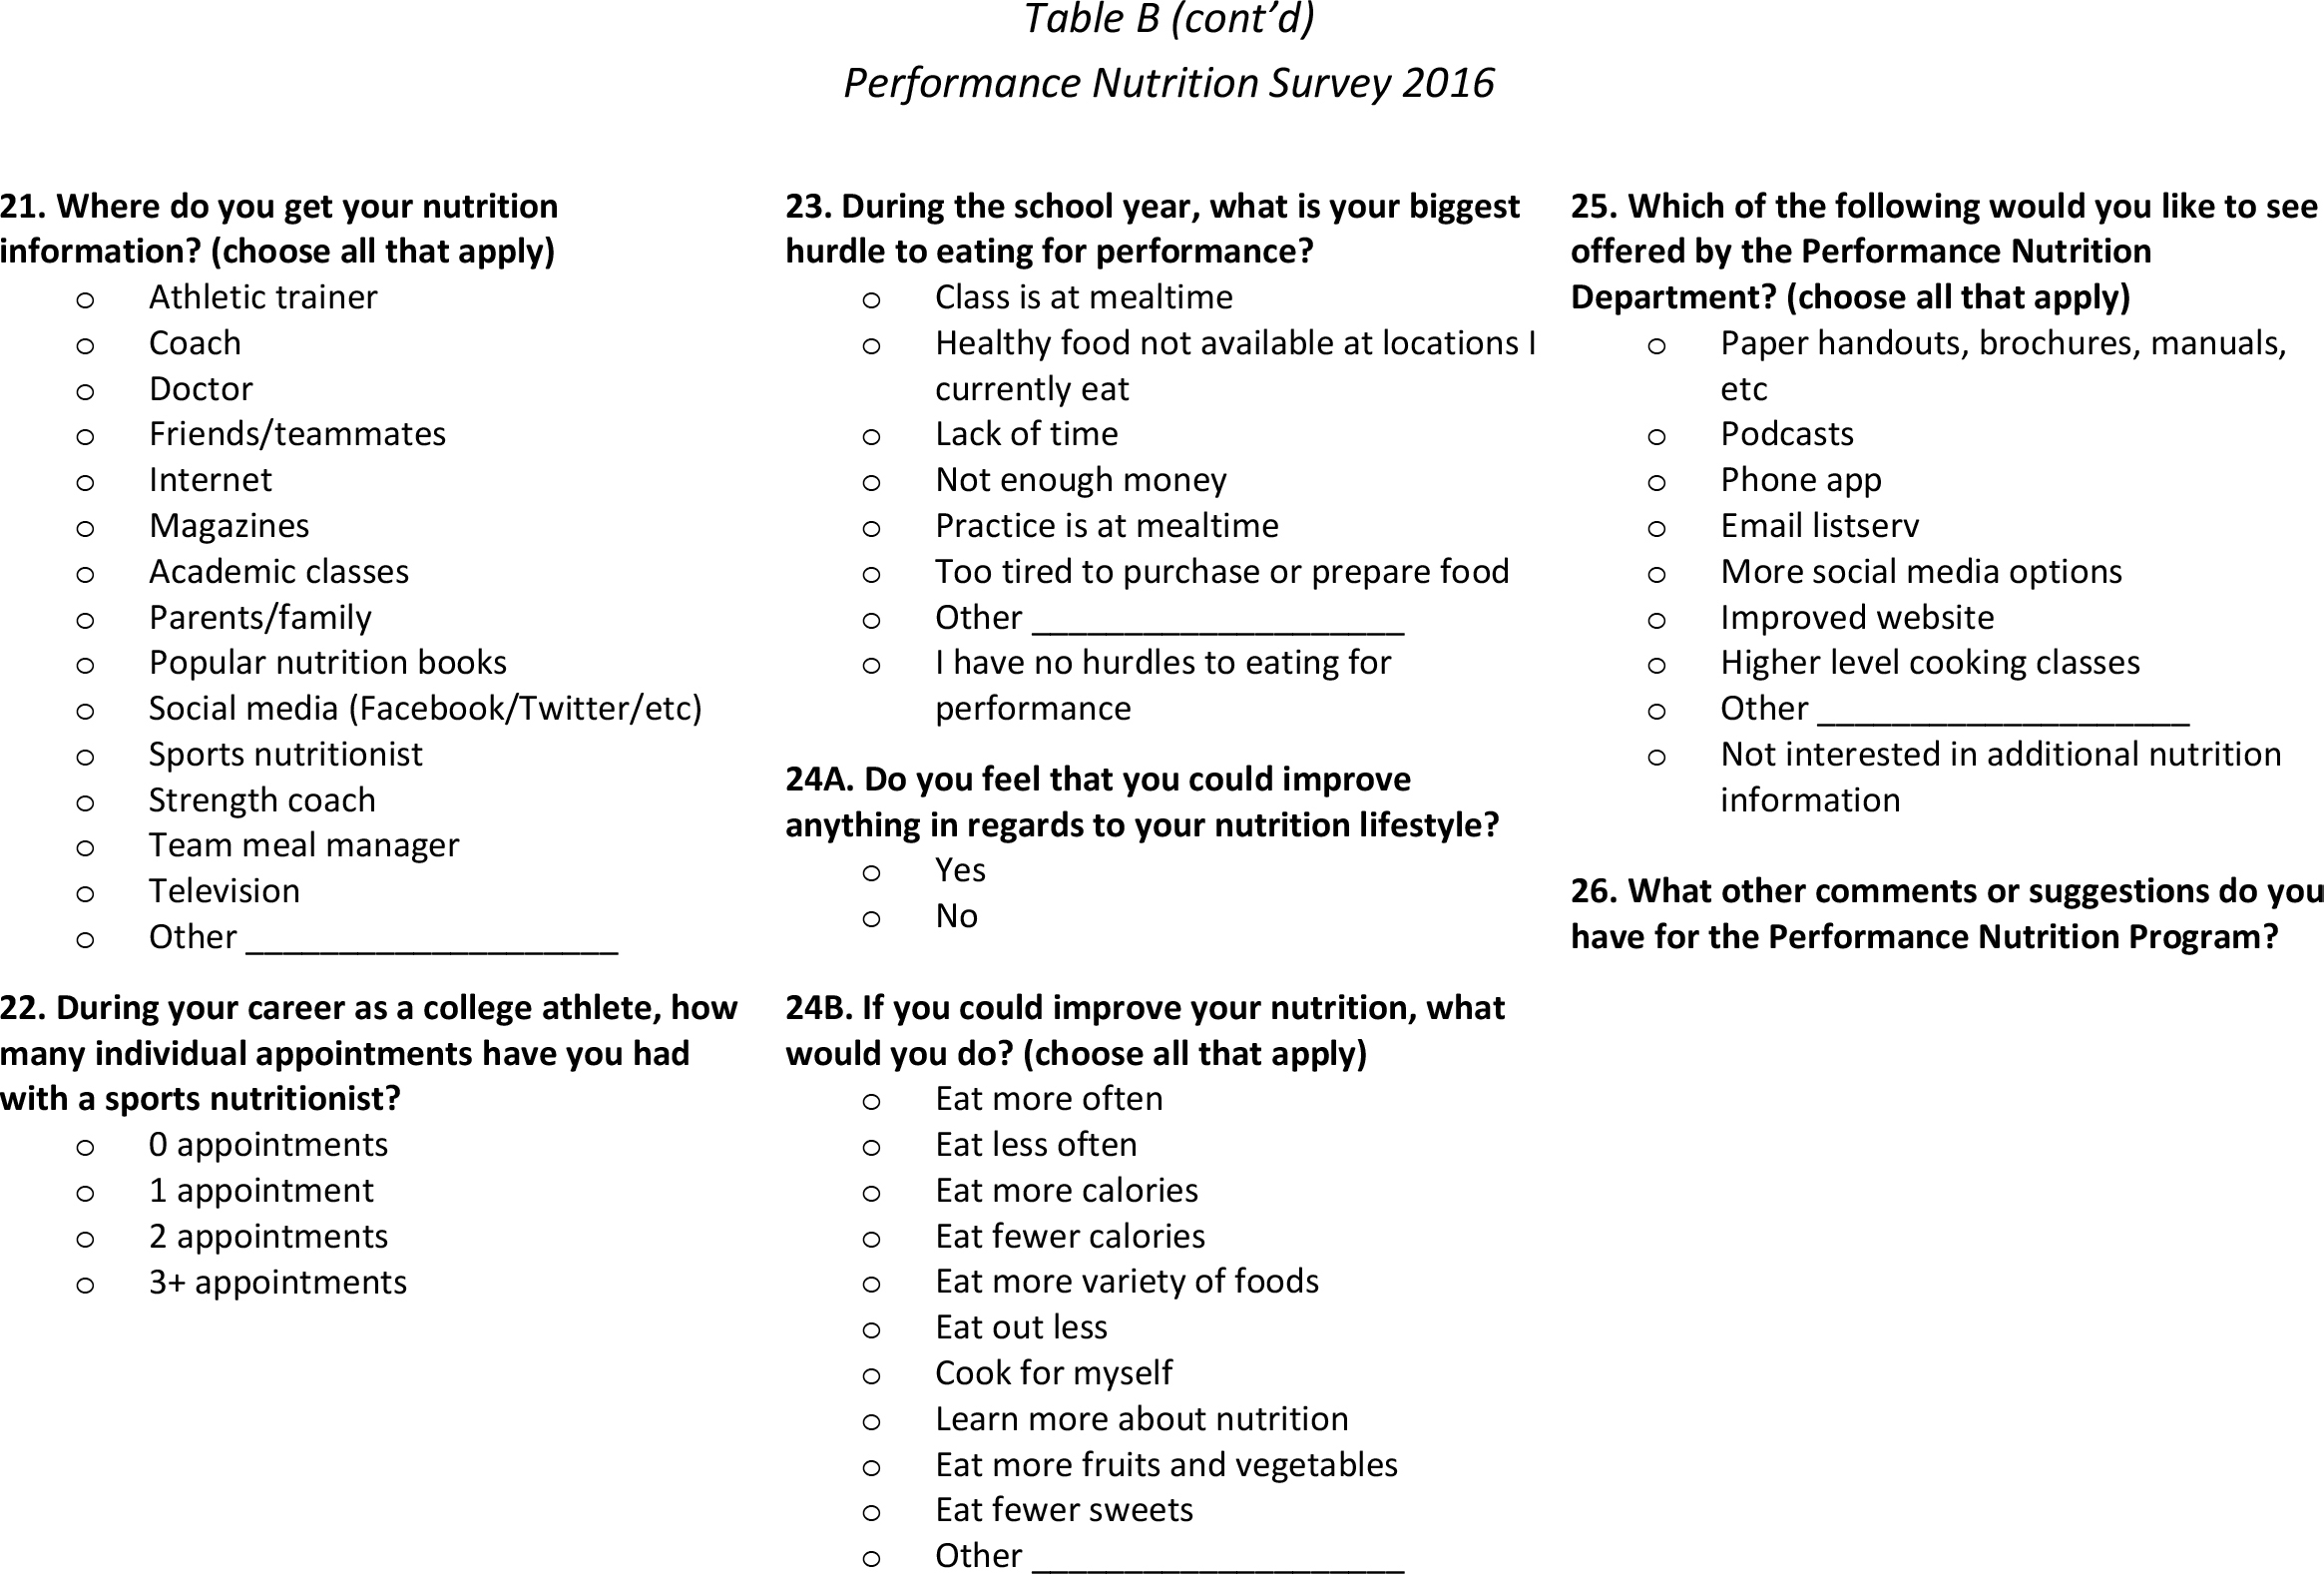 Performance Nutrition Survey 2016The Performance Nutrition Program exists to provide you with food and nutrition information in order to improve your performance and overall health. Here's your chance to tell us how we could better fuel you. Completion of this 5 minute survey is confidential and voluntary.